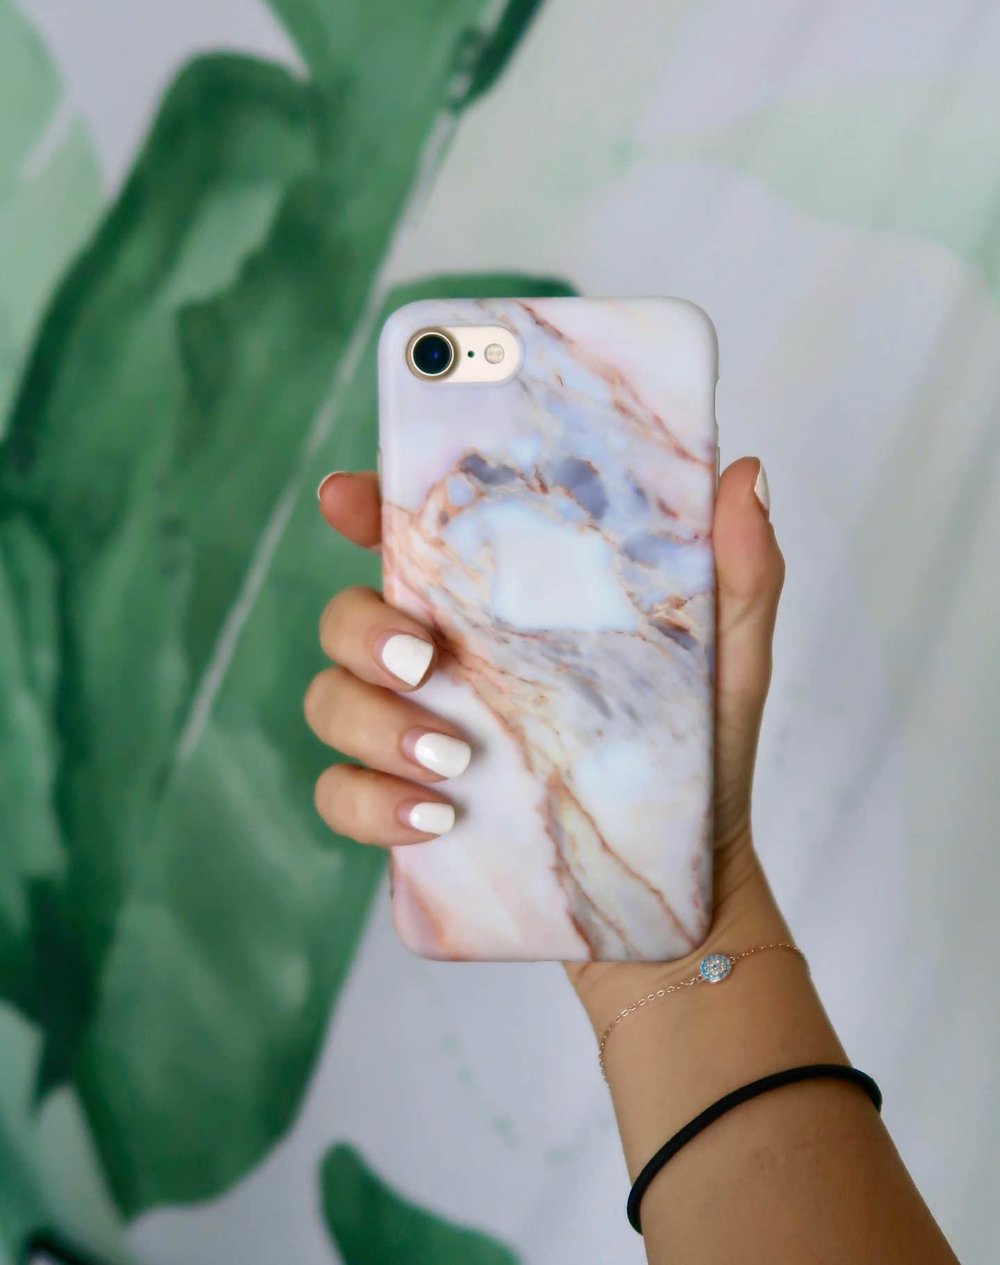 Let's be twins!!! - Any phone case lovers out there??? I've always found it to be so much fun to switch up my case, it would feel like I got a new phone!For the longest time I had a simple (basic) white marble phone case and I was kind of getting bored of it… so I went to amazon to find a cute case that was still pretty cheap. I still really like the marble print but I wanted mine to be a little less basic and predictable. I purchased this case in the color pink and I absolutely adore it.I really like it because even though it's thin, it still protects my phone whenever I accidentally drop it. It feels sturdy in my hands and it looks super cute at the same time, what more could a girl want?!